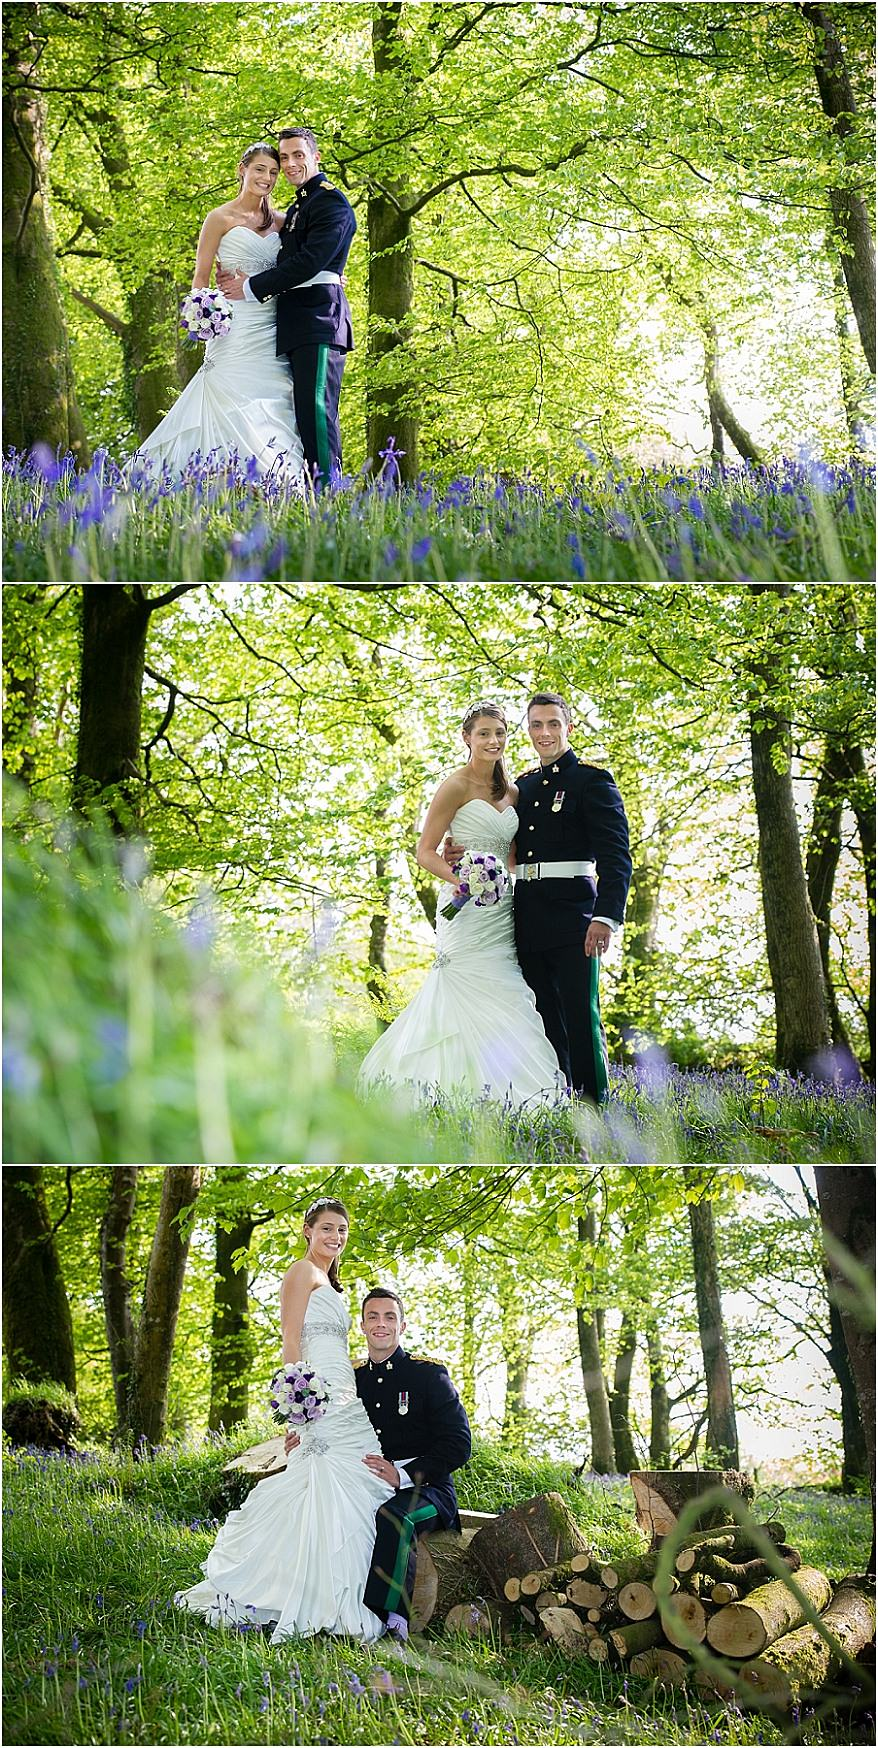 wedding at Trevenna barns 7 Trevenna barns photographer